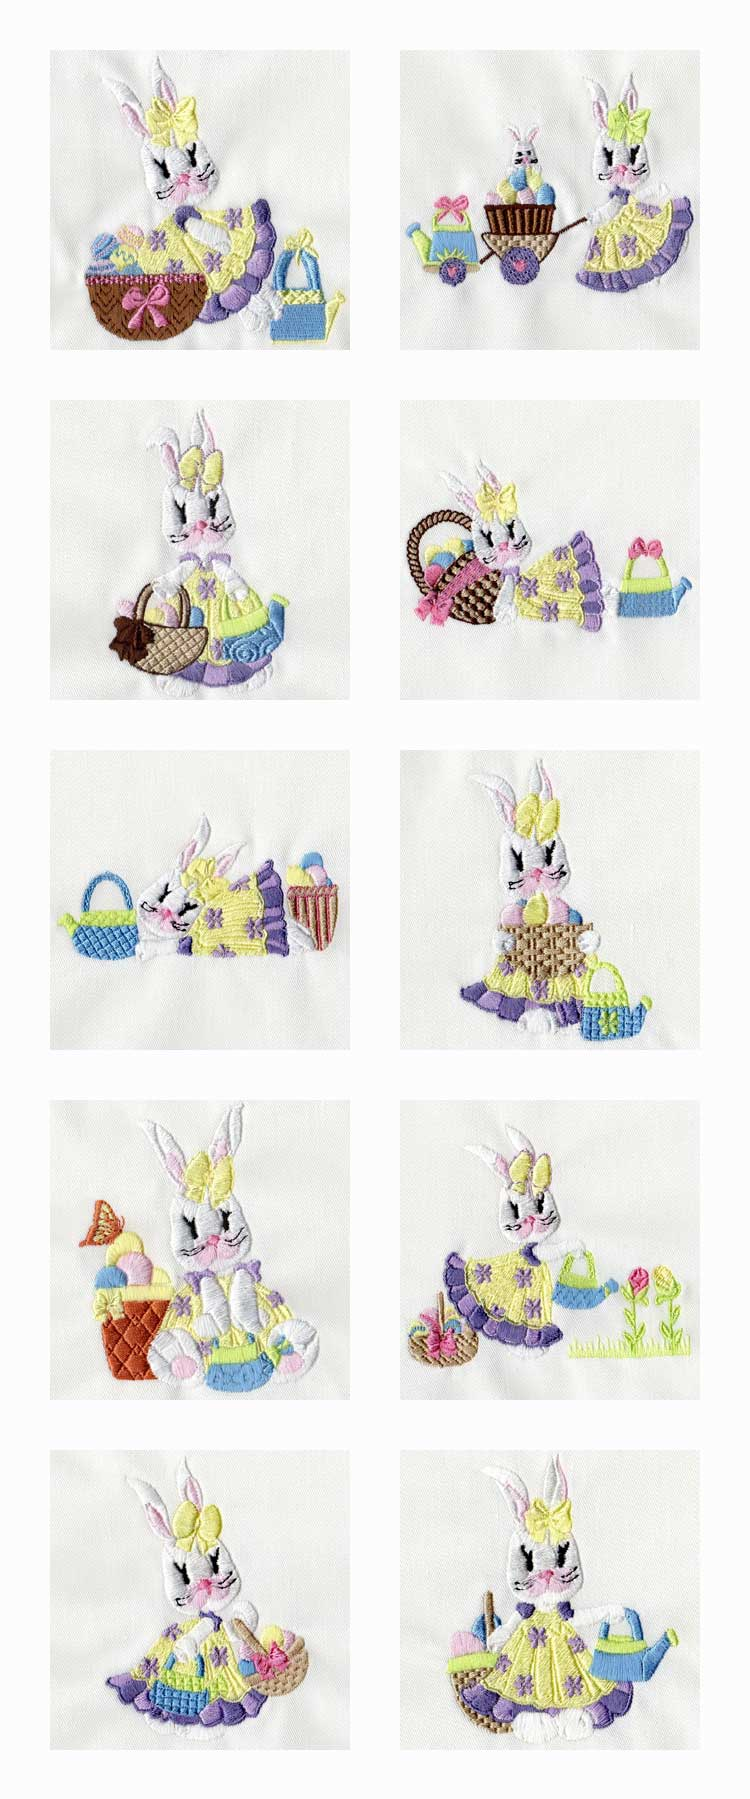 Mrs Bunny Embroidery Machine Design Details